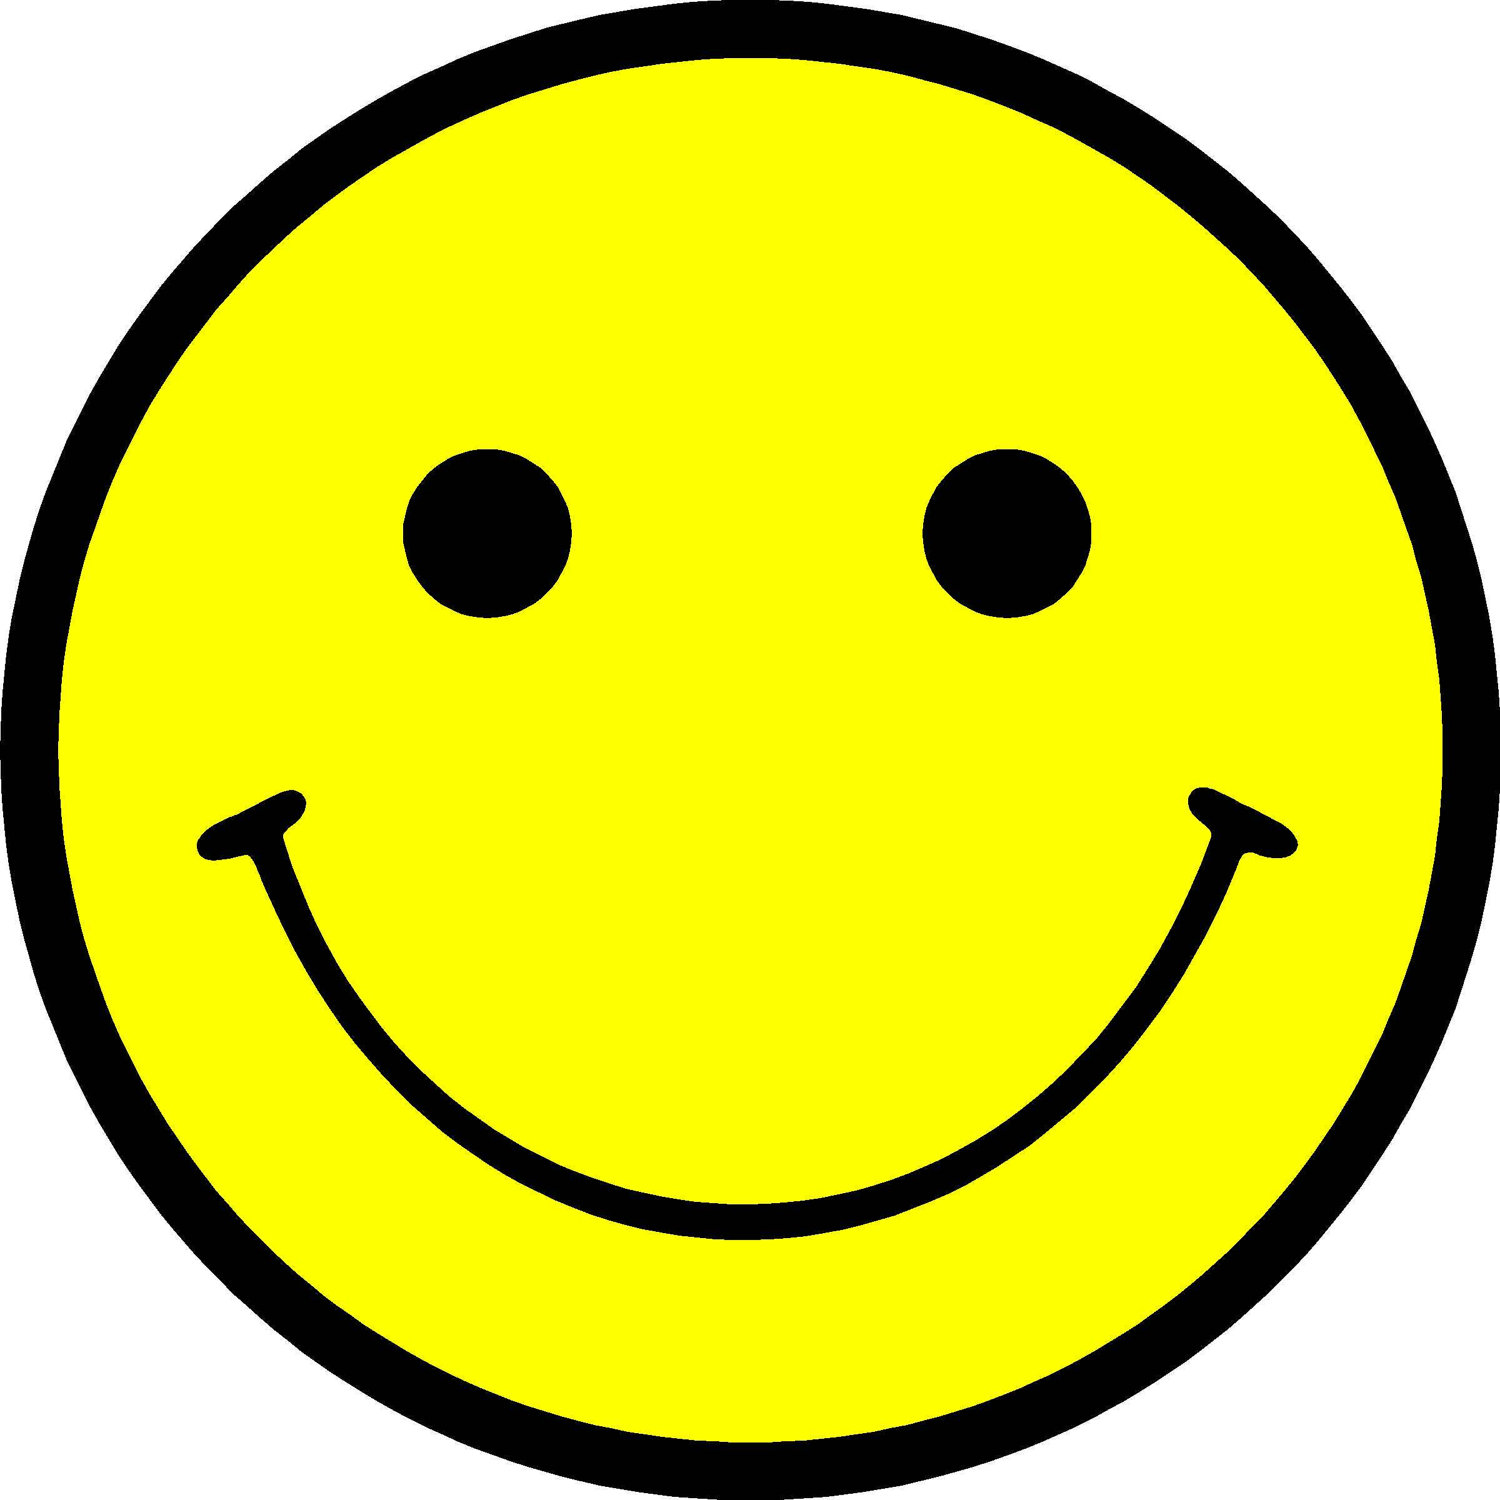 1500x1500 Smiley Face Thumbs Up Thumbs Up Smiley Face With Black And White